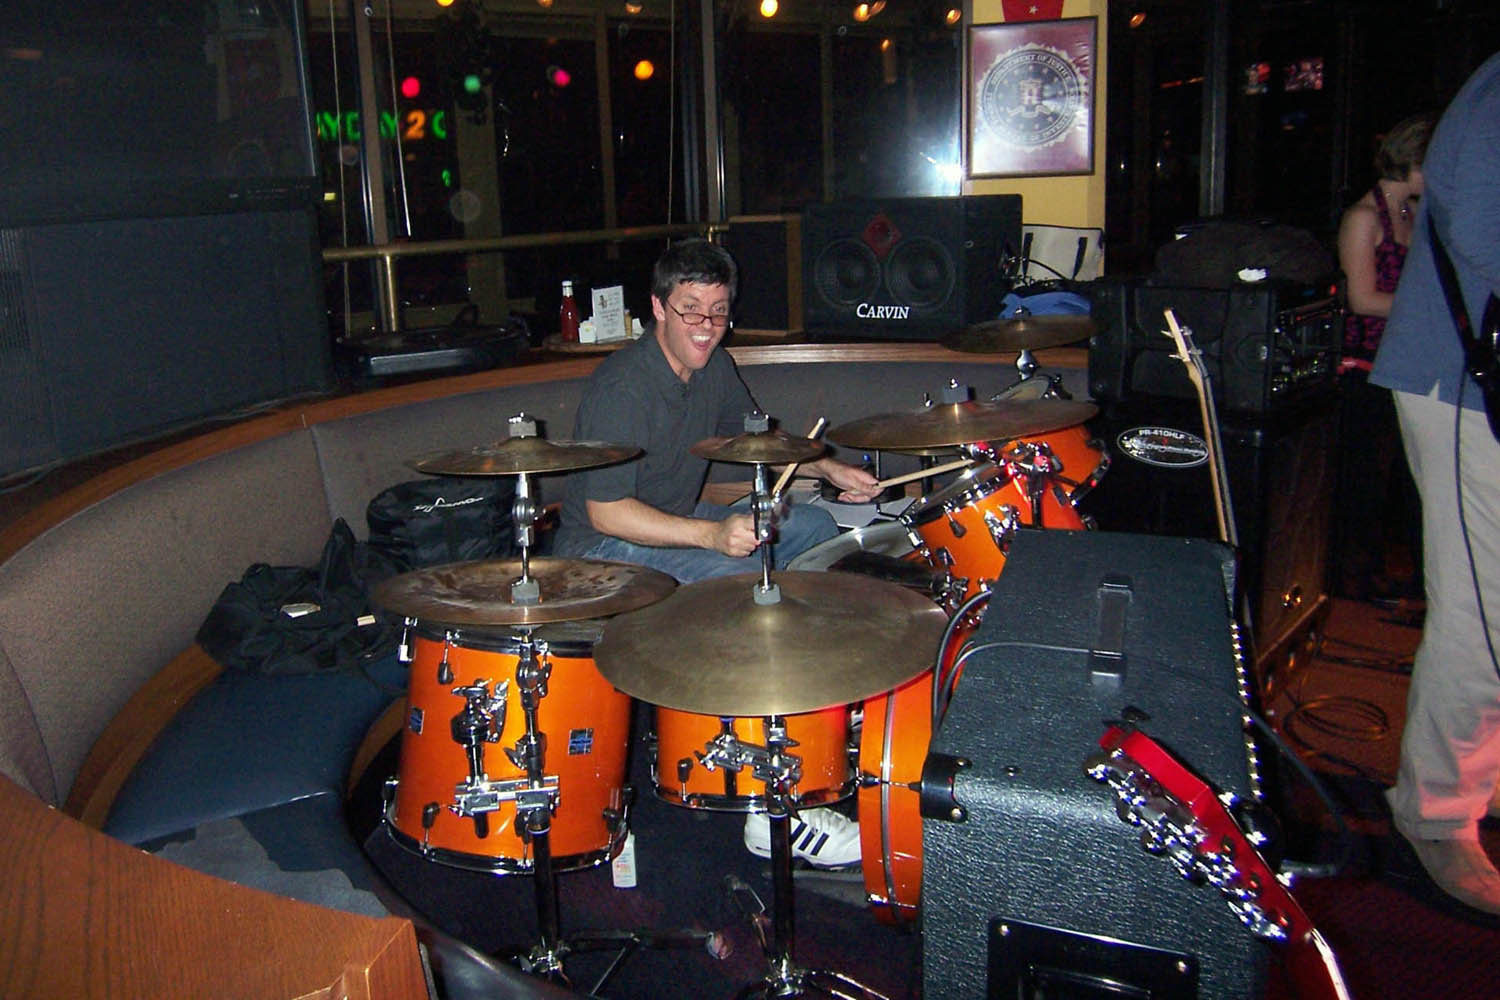 Bobby at the Drums.jpg